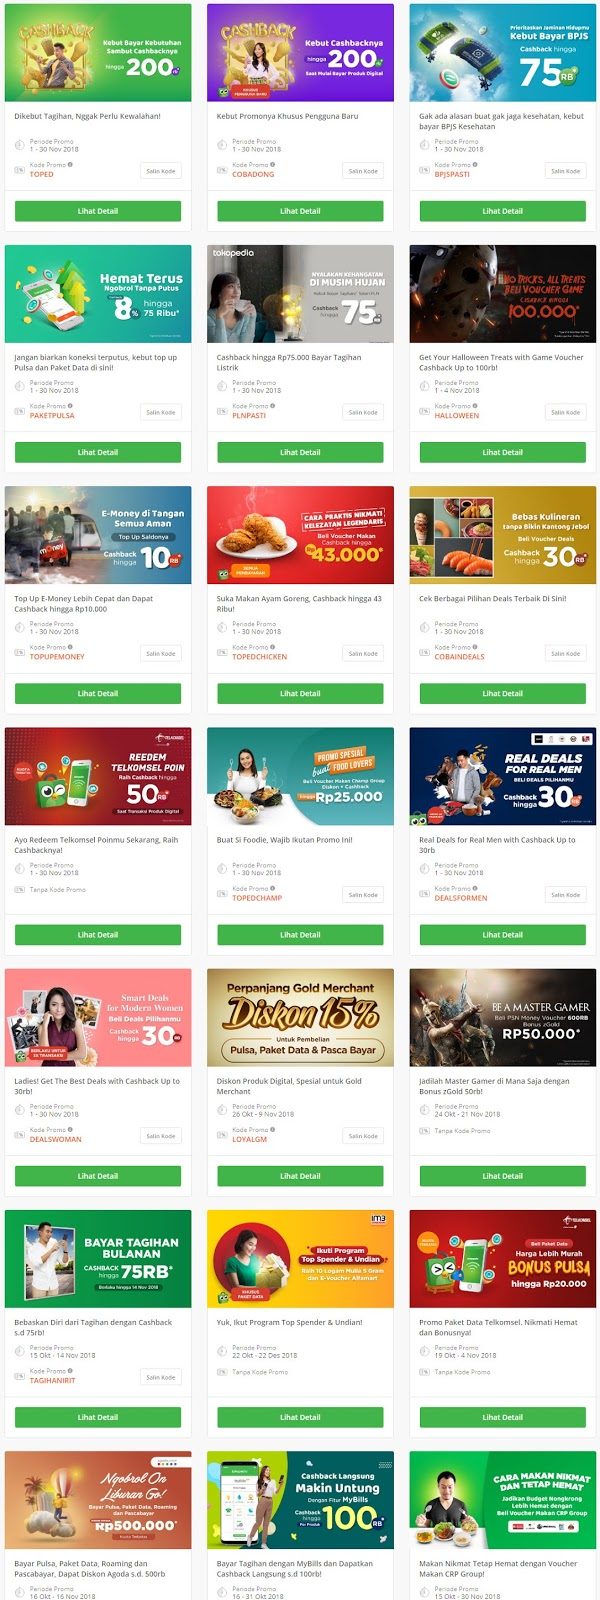 Tokopedia - Promo Pembayaran & Produk Digital Bulan November 2018